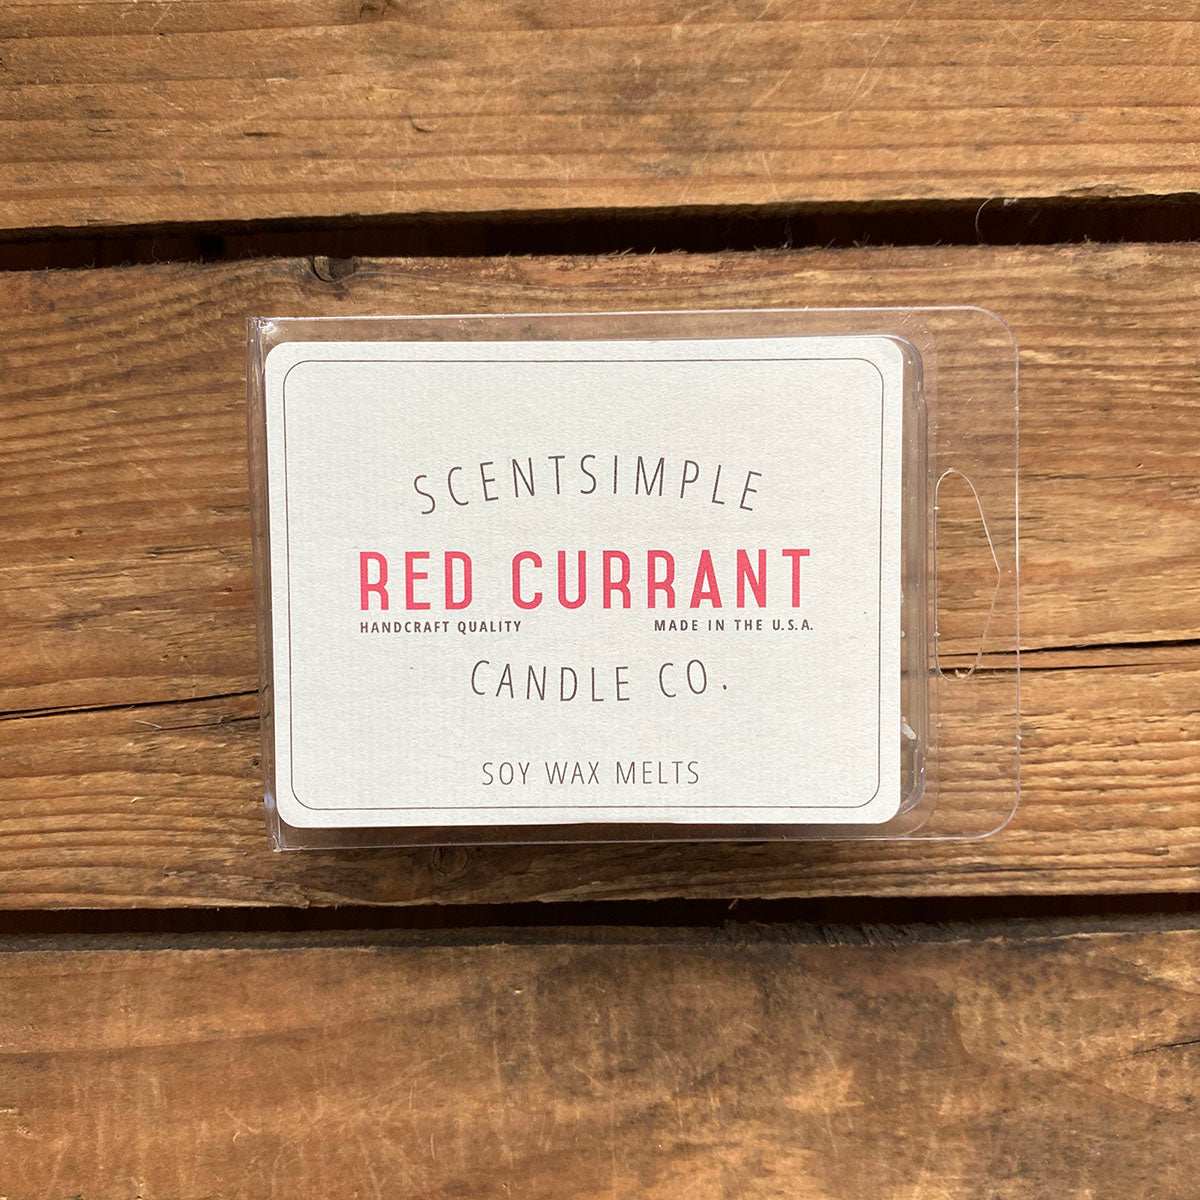 Red Currant Scented Soy Wax Melts